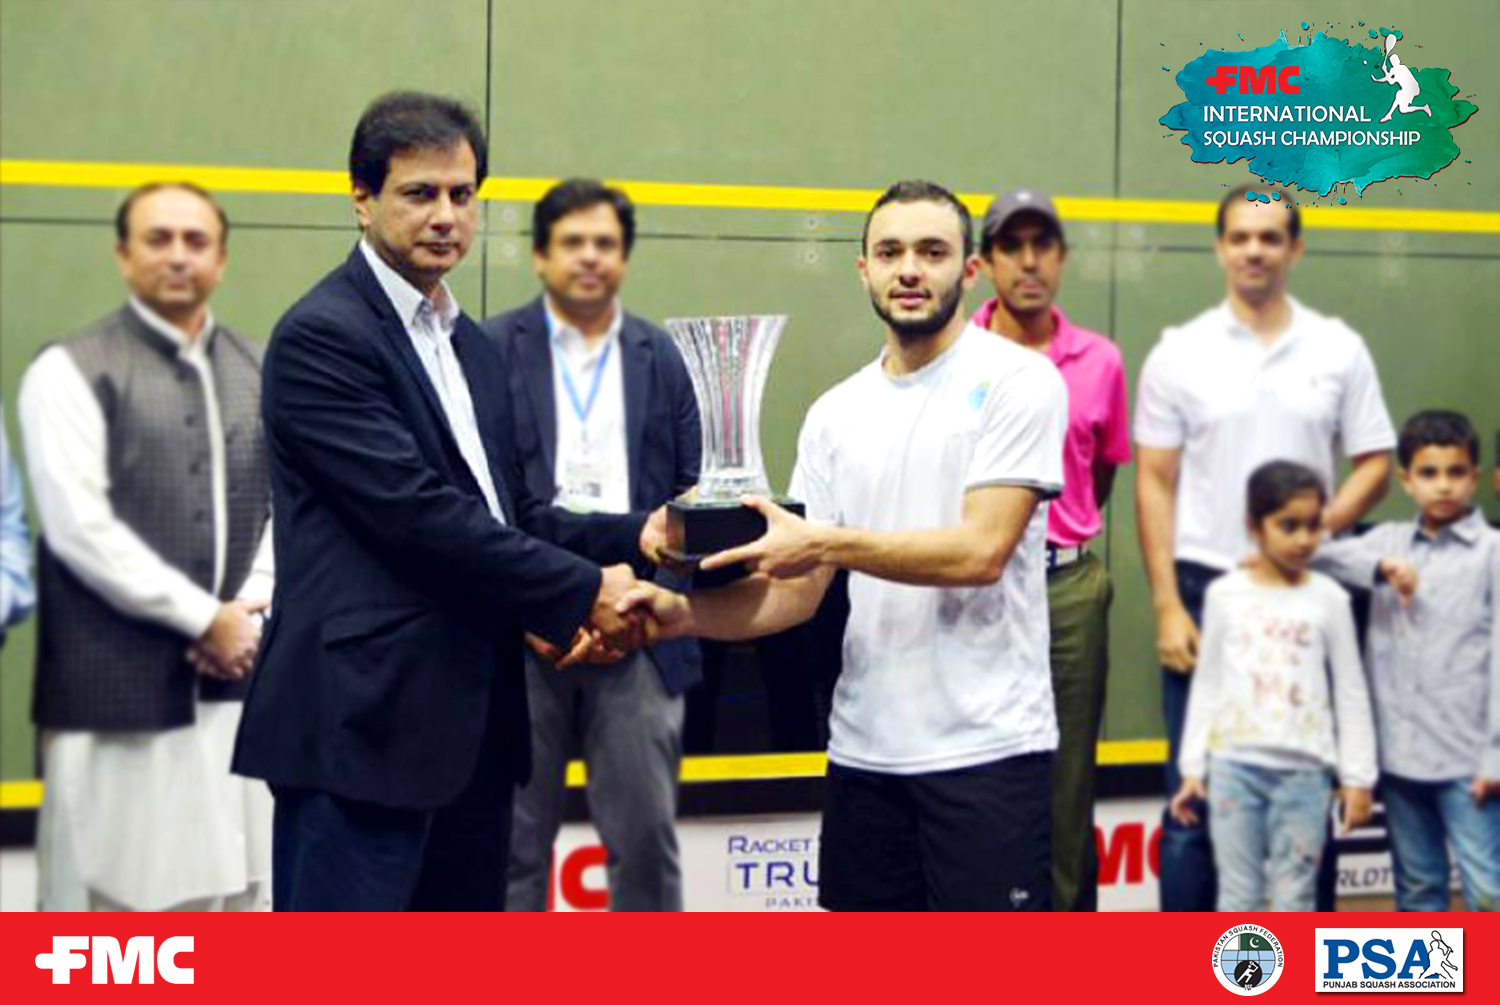 Youssef crowned FMC Int'l Squash champion